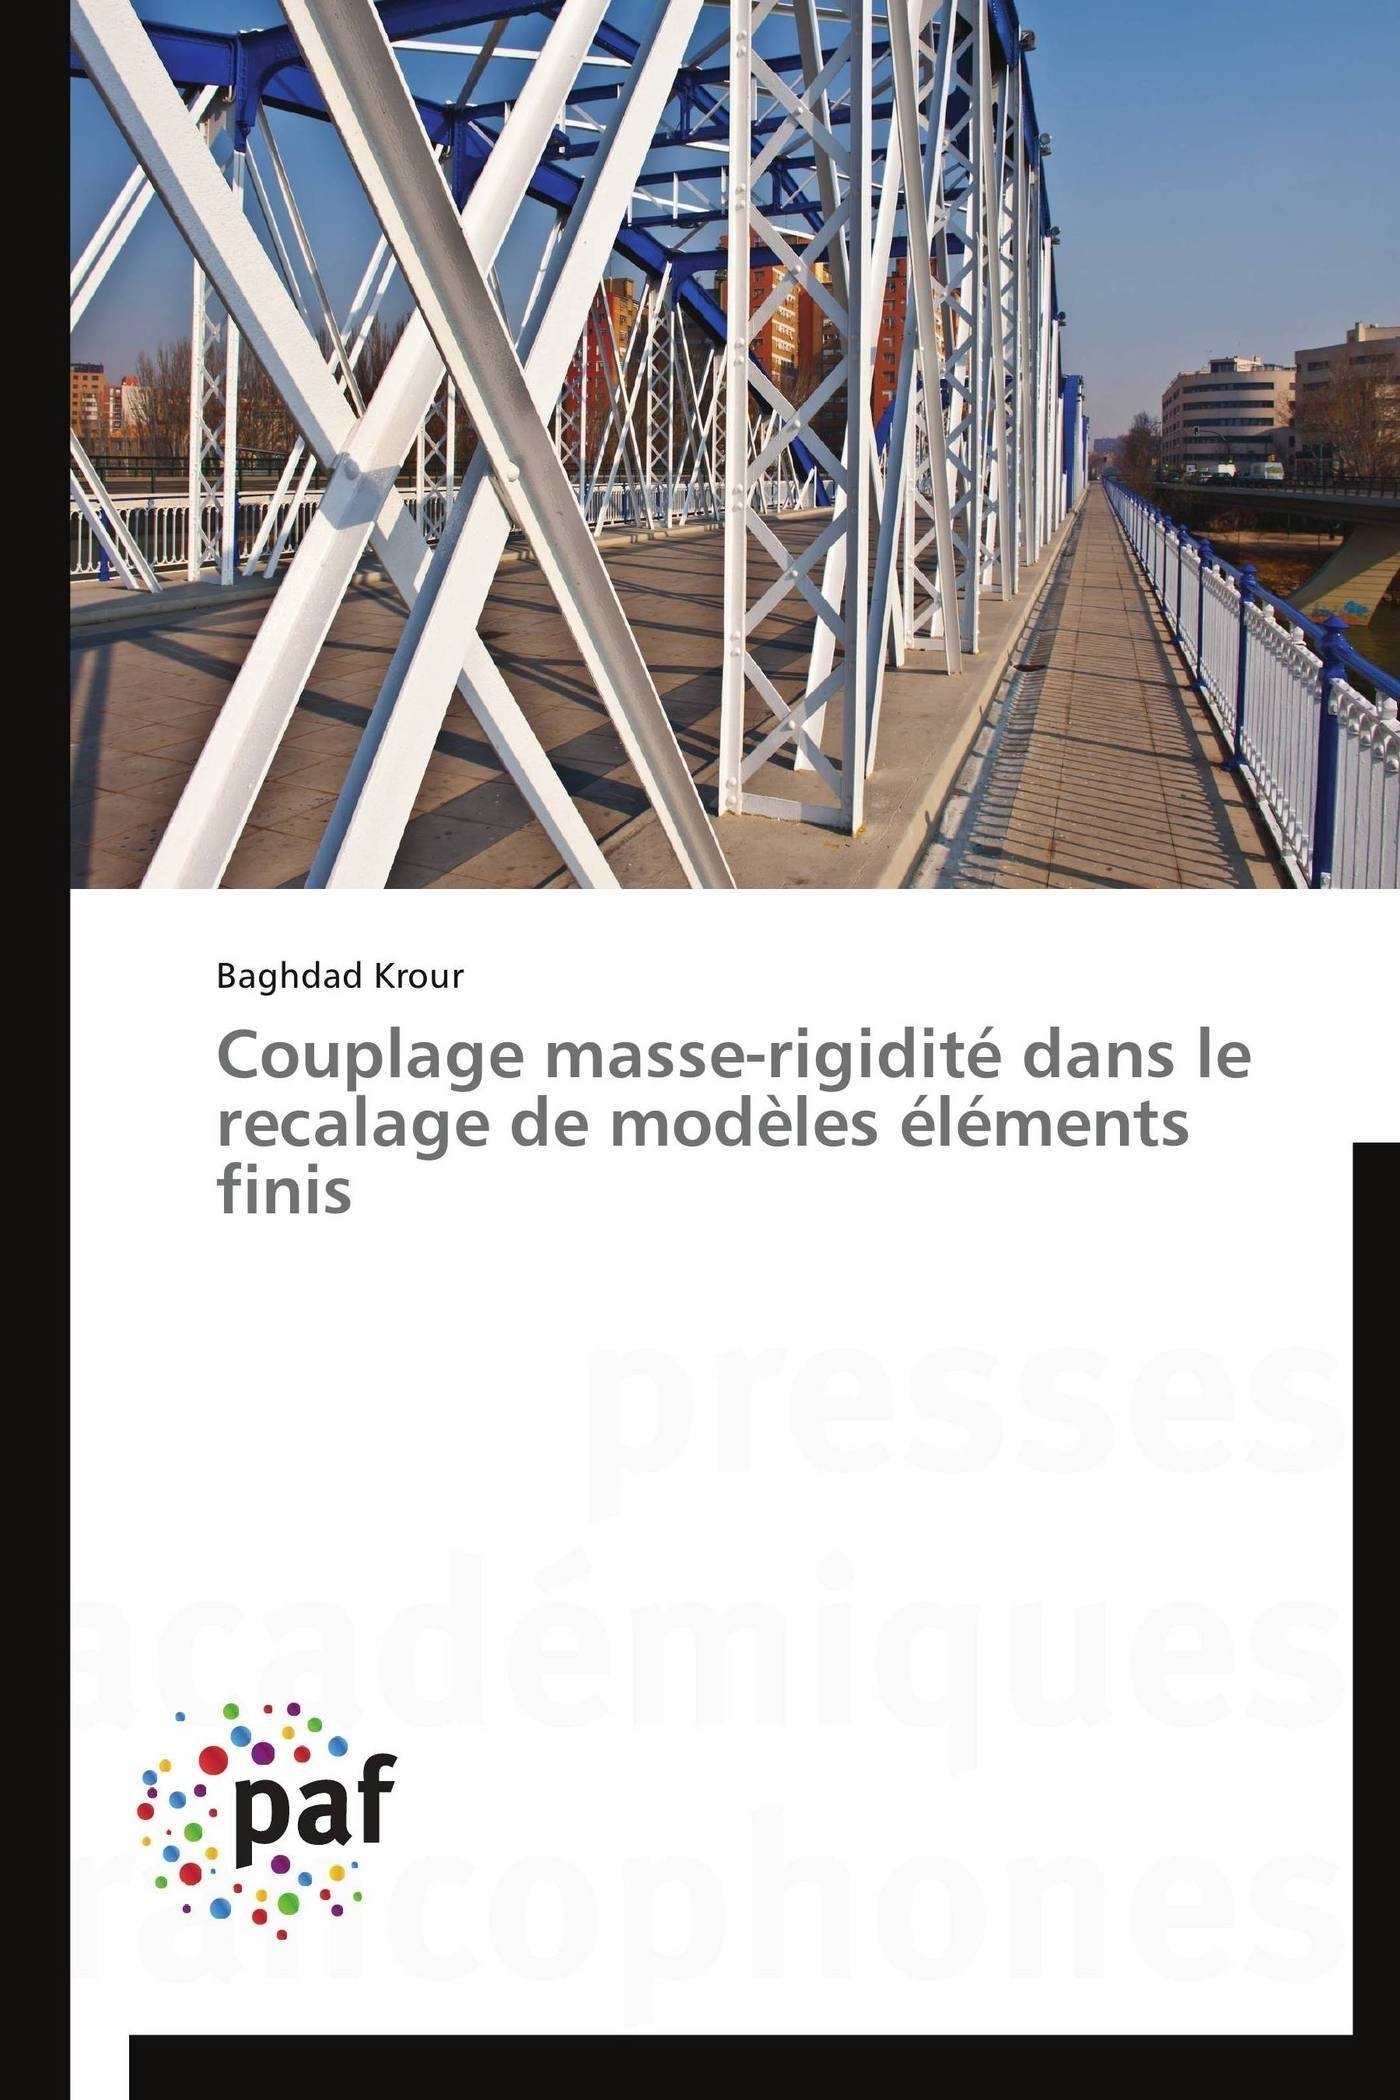 COUPLAGE MASSE-RIGIDITE DANS LE RECALAGE DE MODELES ELEMENTS FINIS